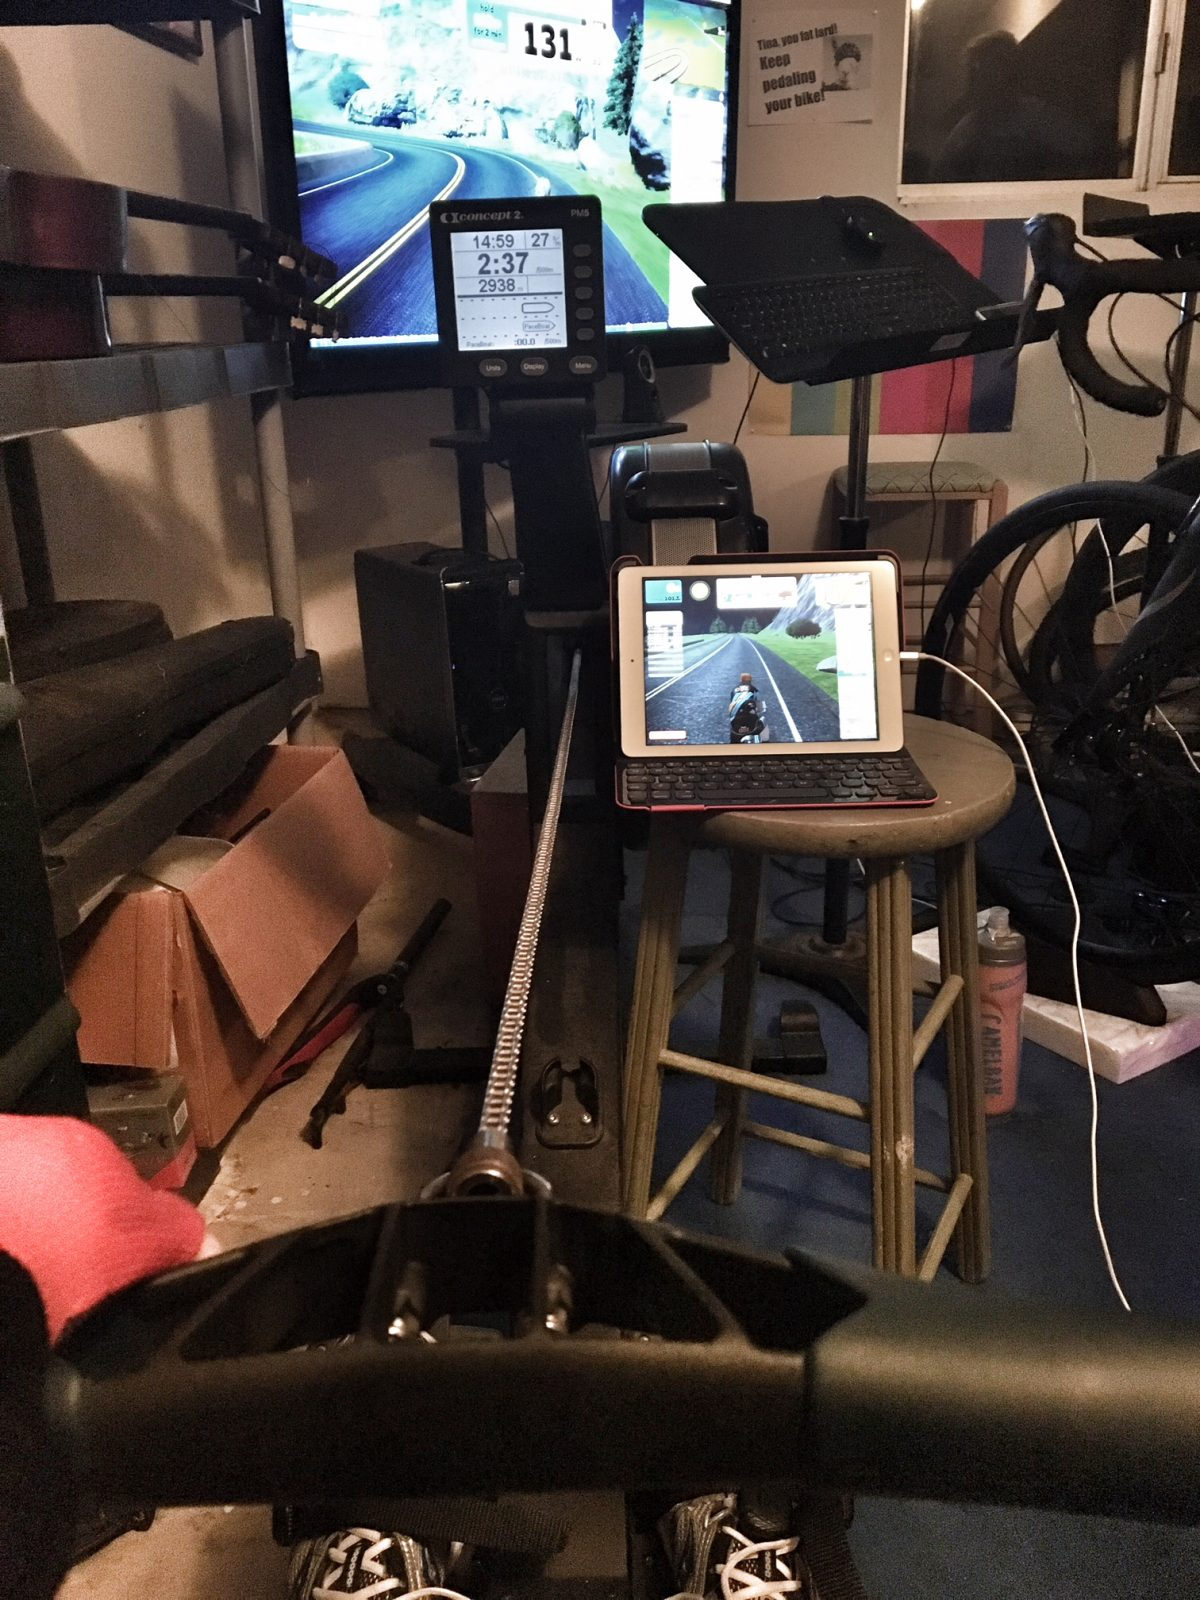 How To Use Your Concept2 Rower on Zwift | Zwift Insider